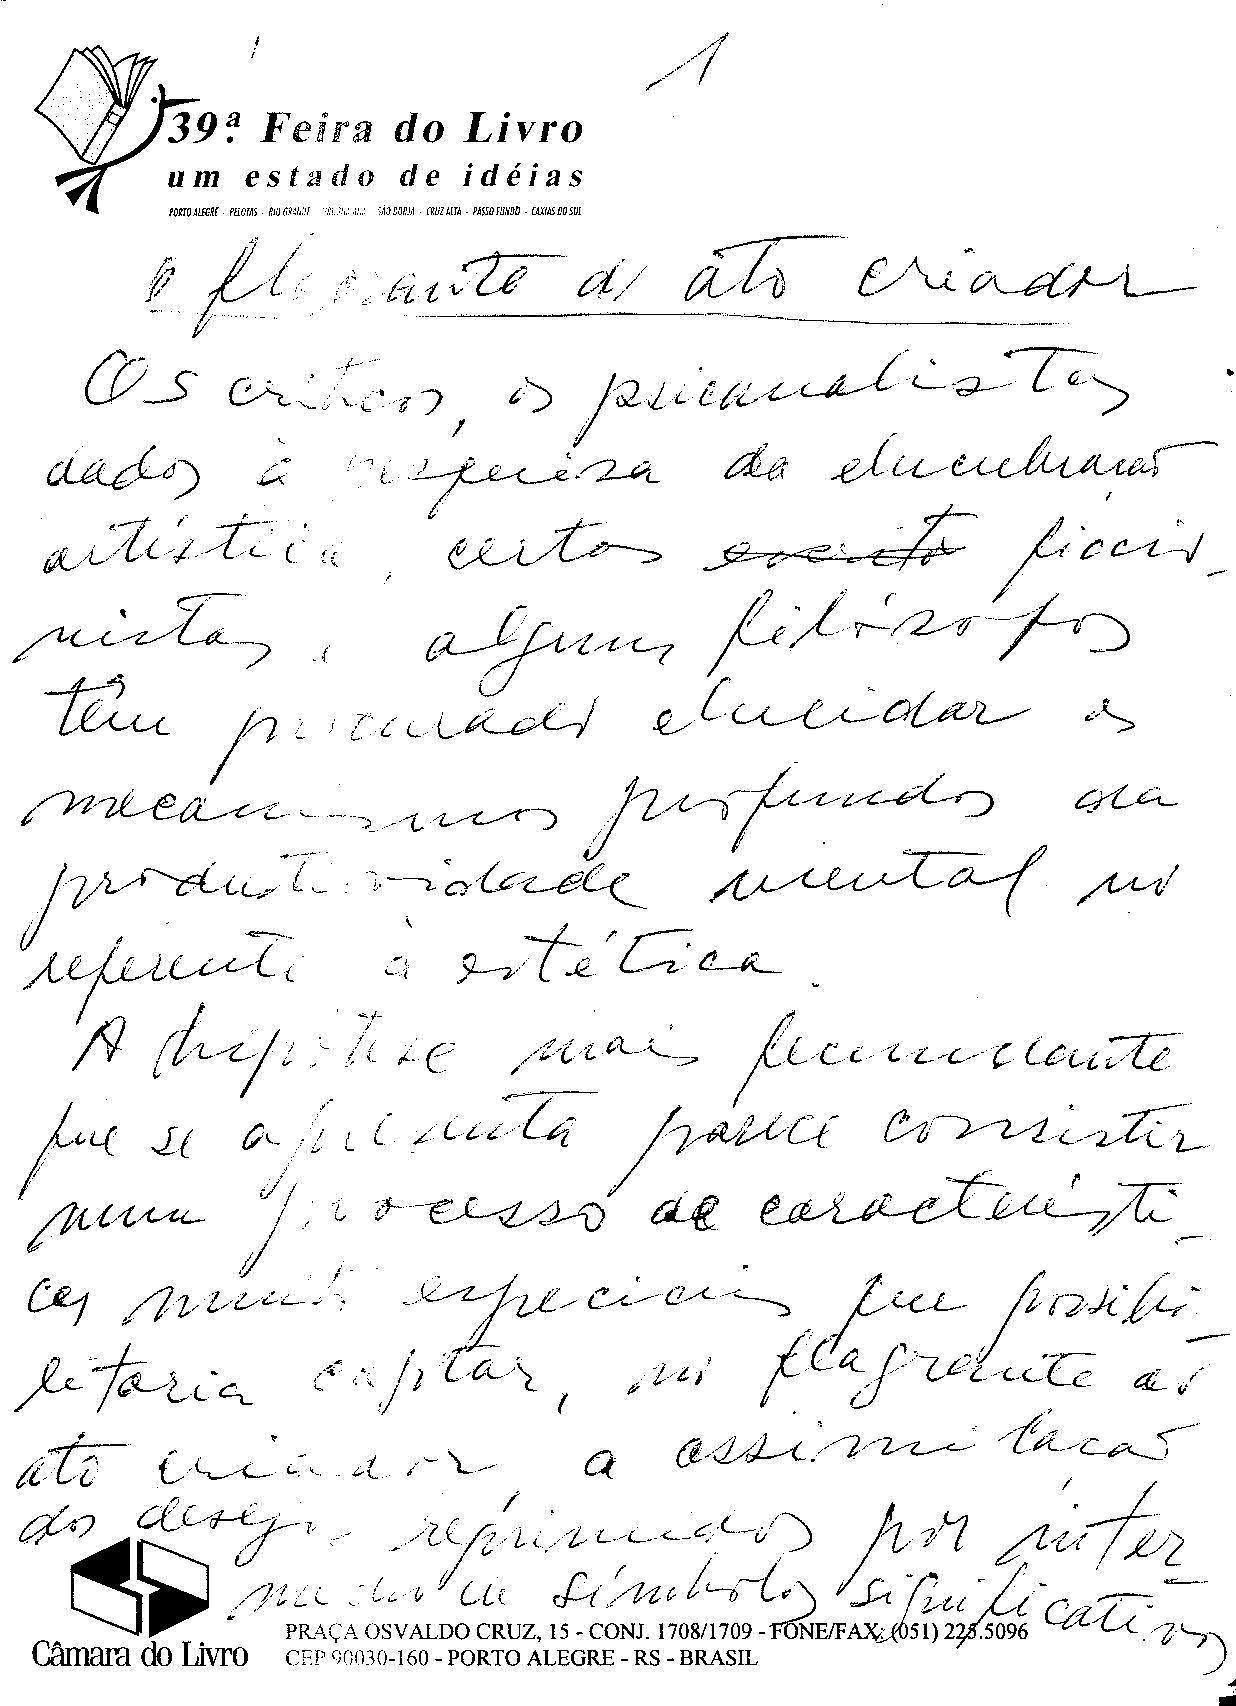 Manuscrito de O Flagrante do ato criador